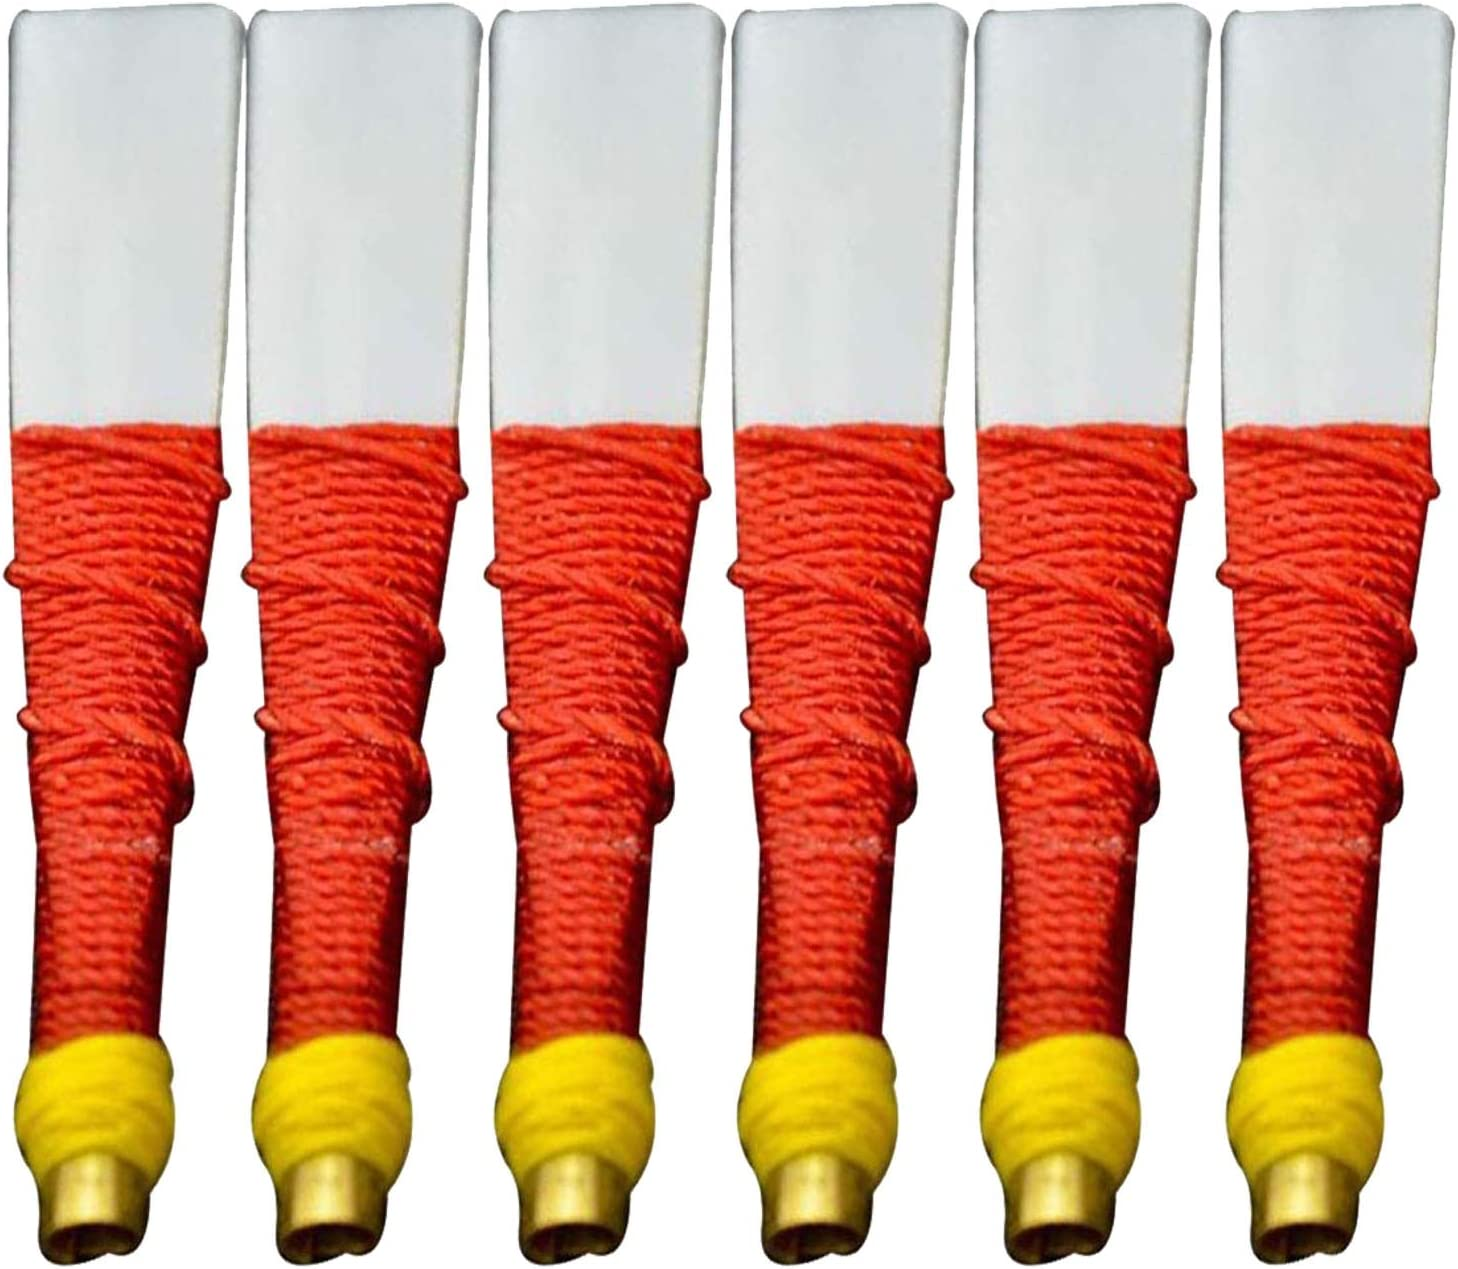 Brand New Bagpipes Pipe Chanter Plastic  Reeds  6 Pcs Red Color